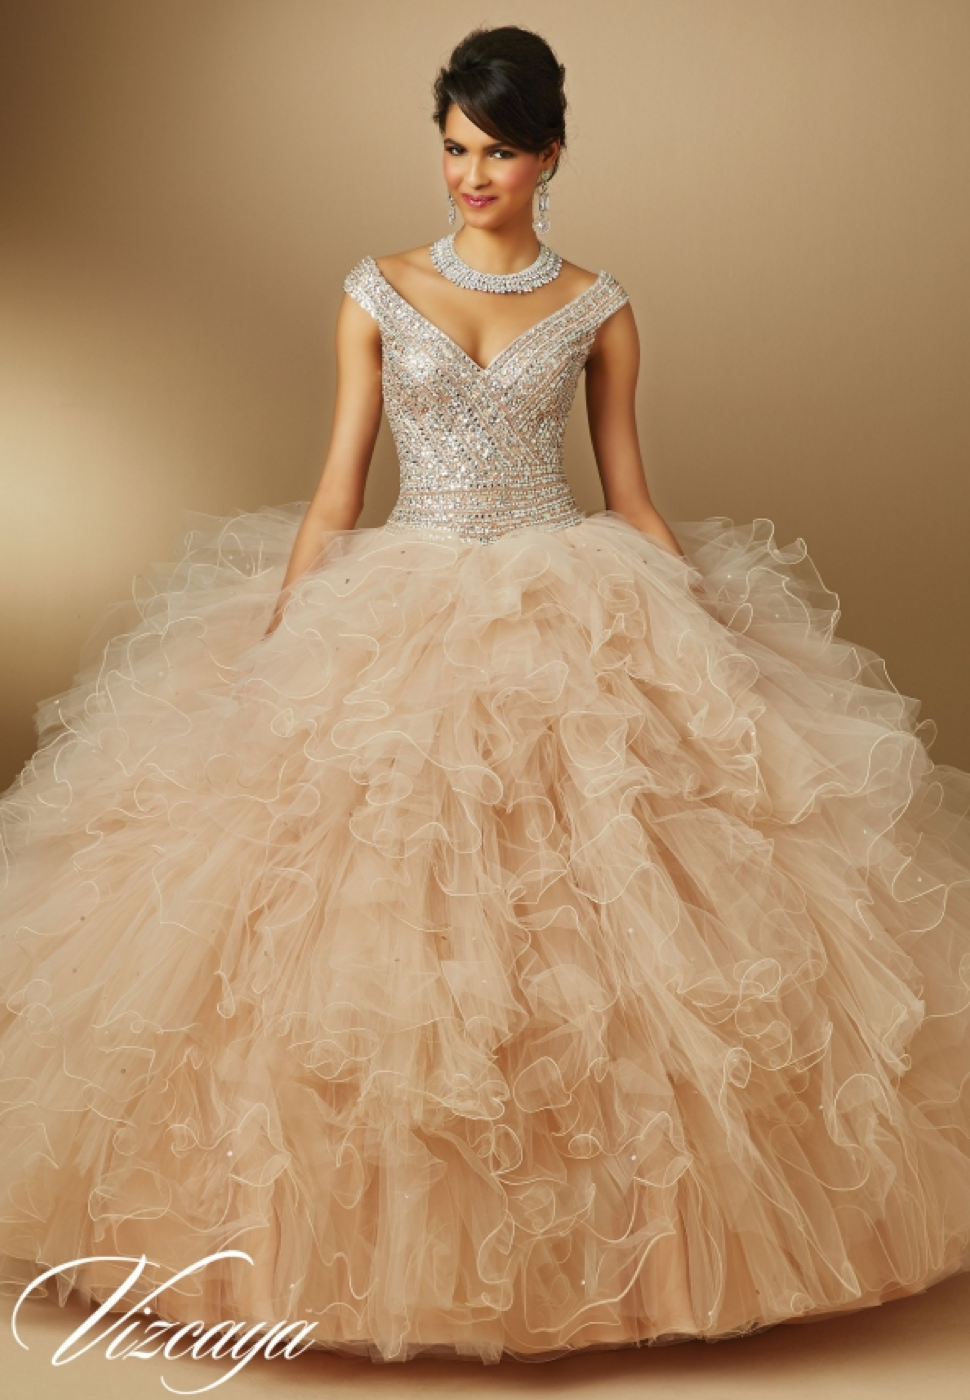 Bridal dress shops in san antonio texas wedding dresses for Wedding dress stores in arkansas